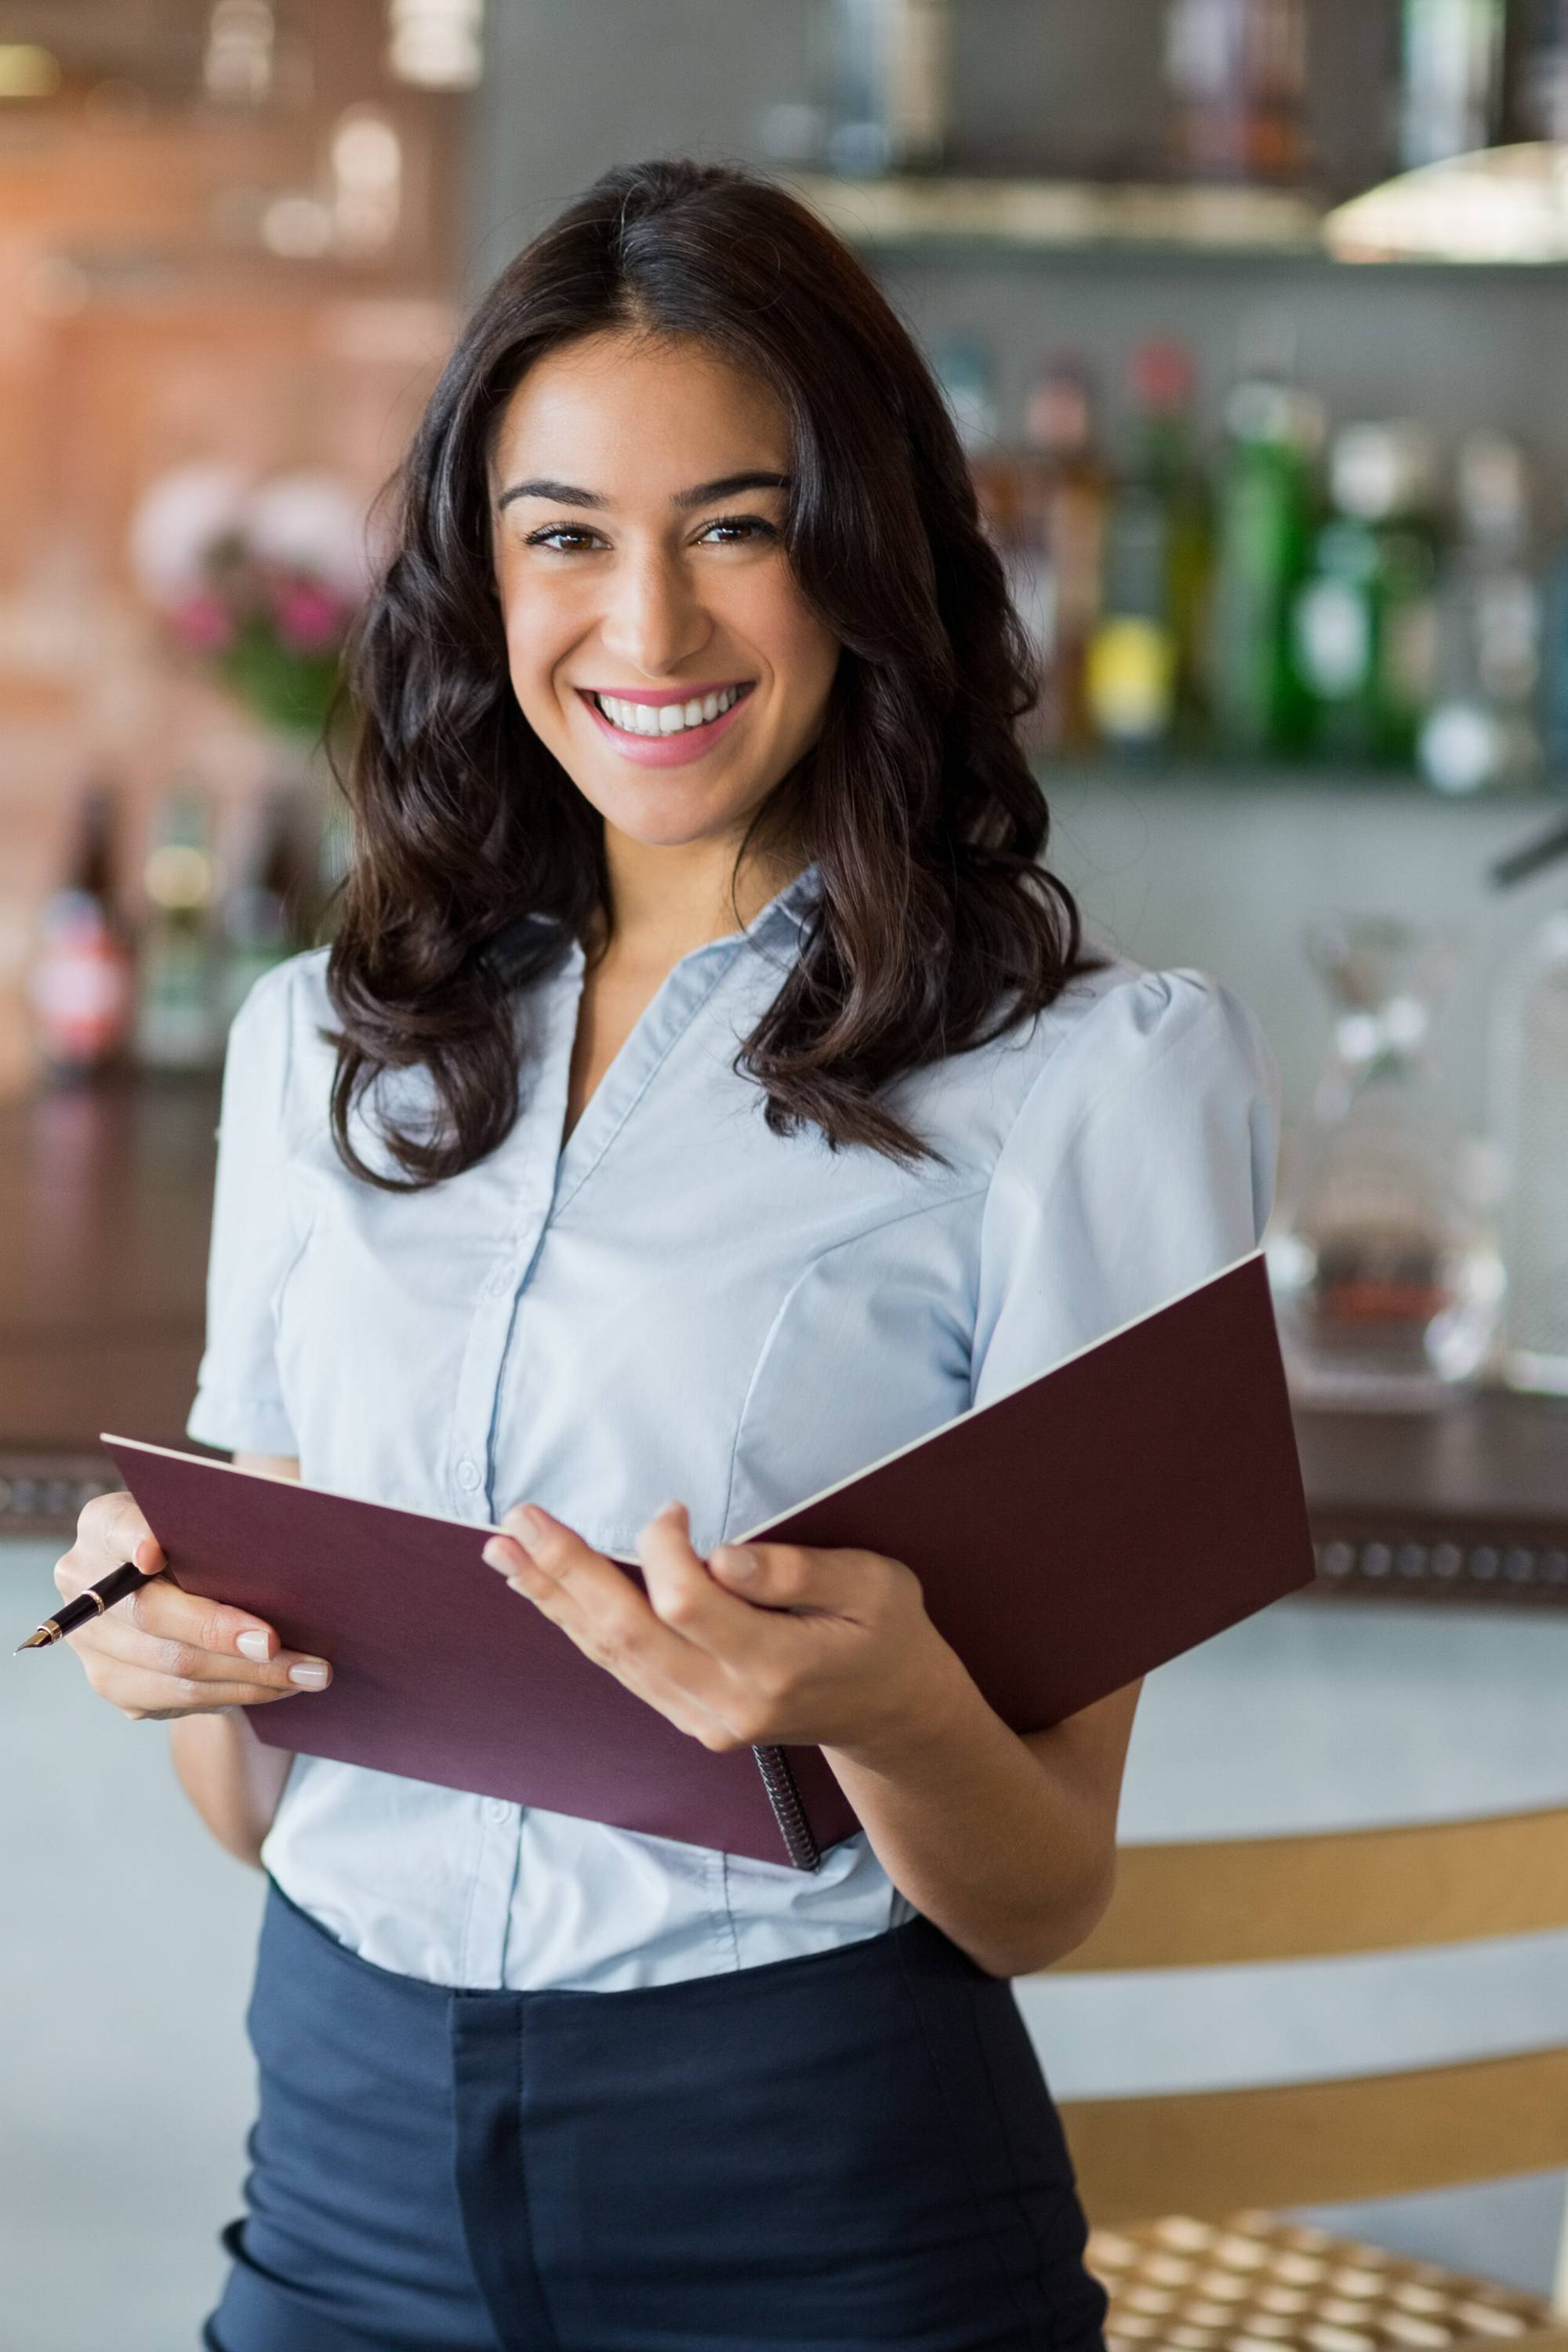 Restaurant manager standing in front of bar